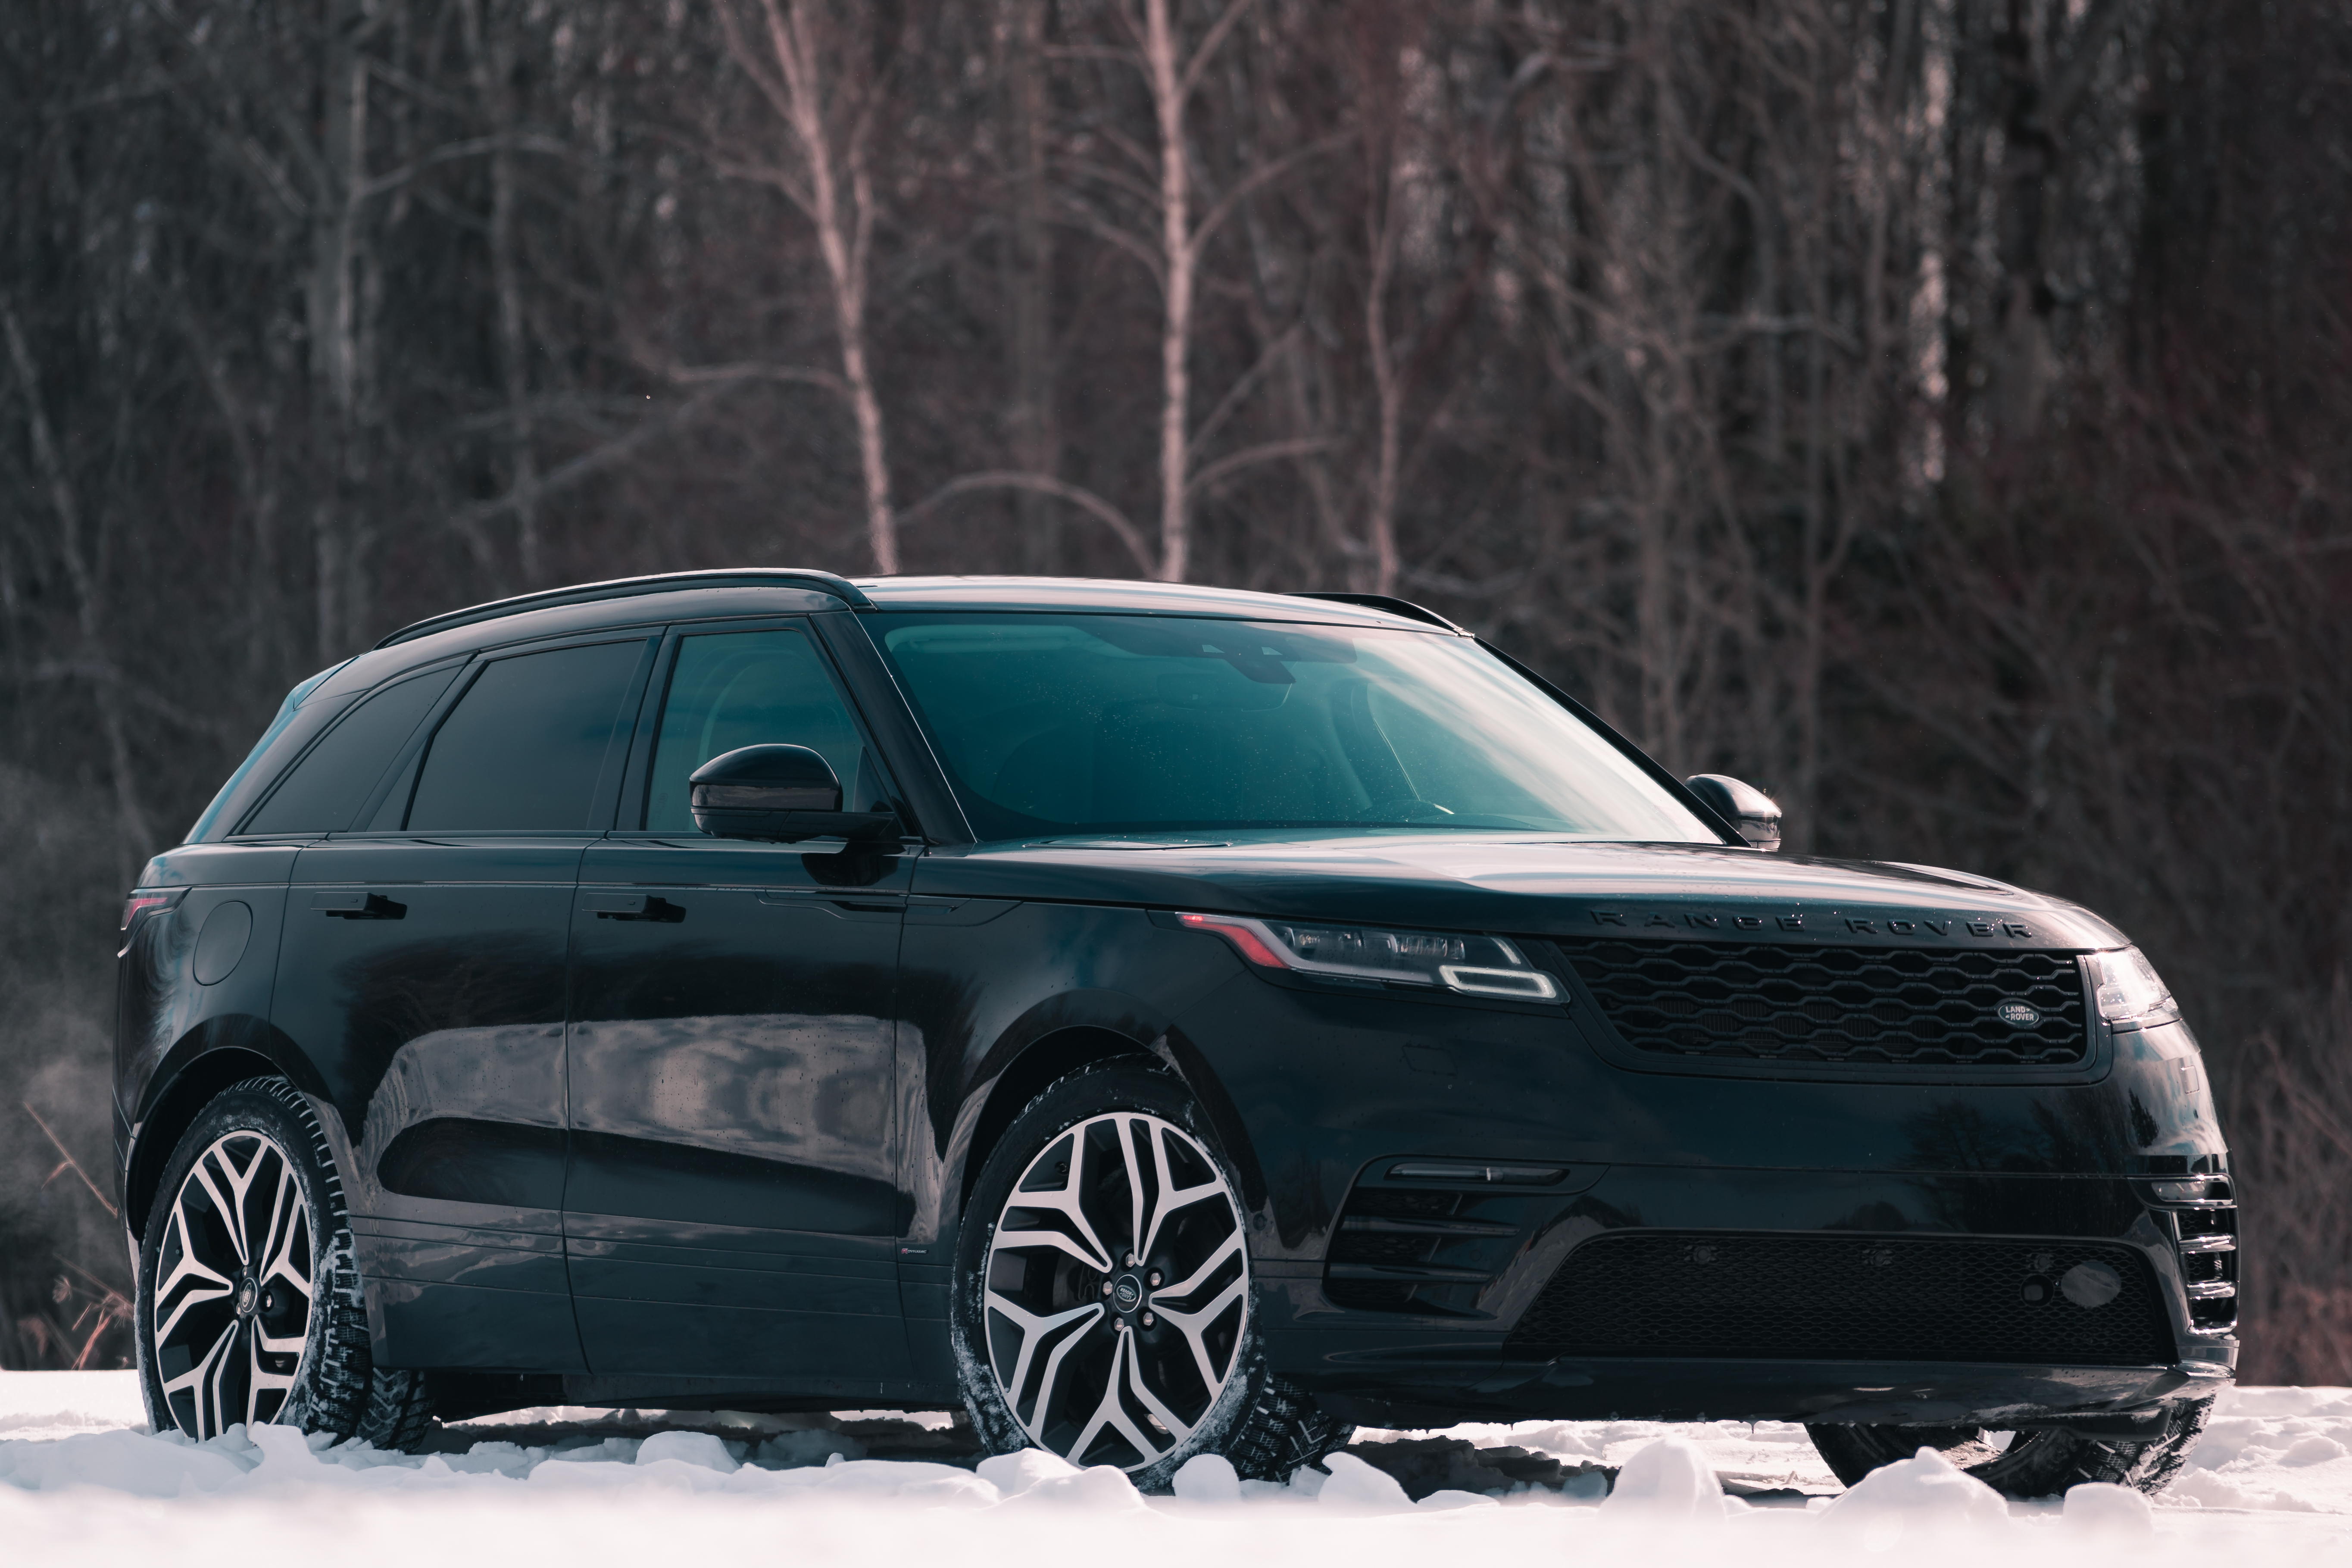 The 2019 Range Rover Velar Beats Its Rivals With Good Looks